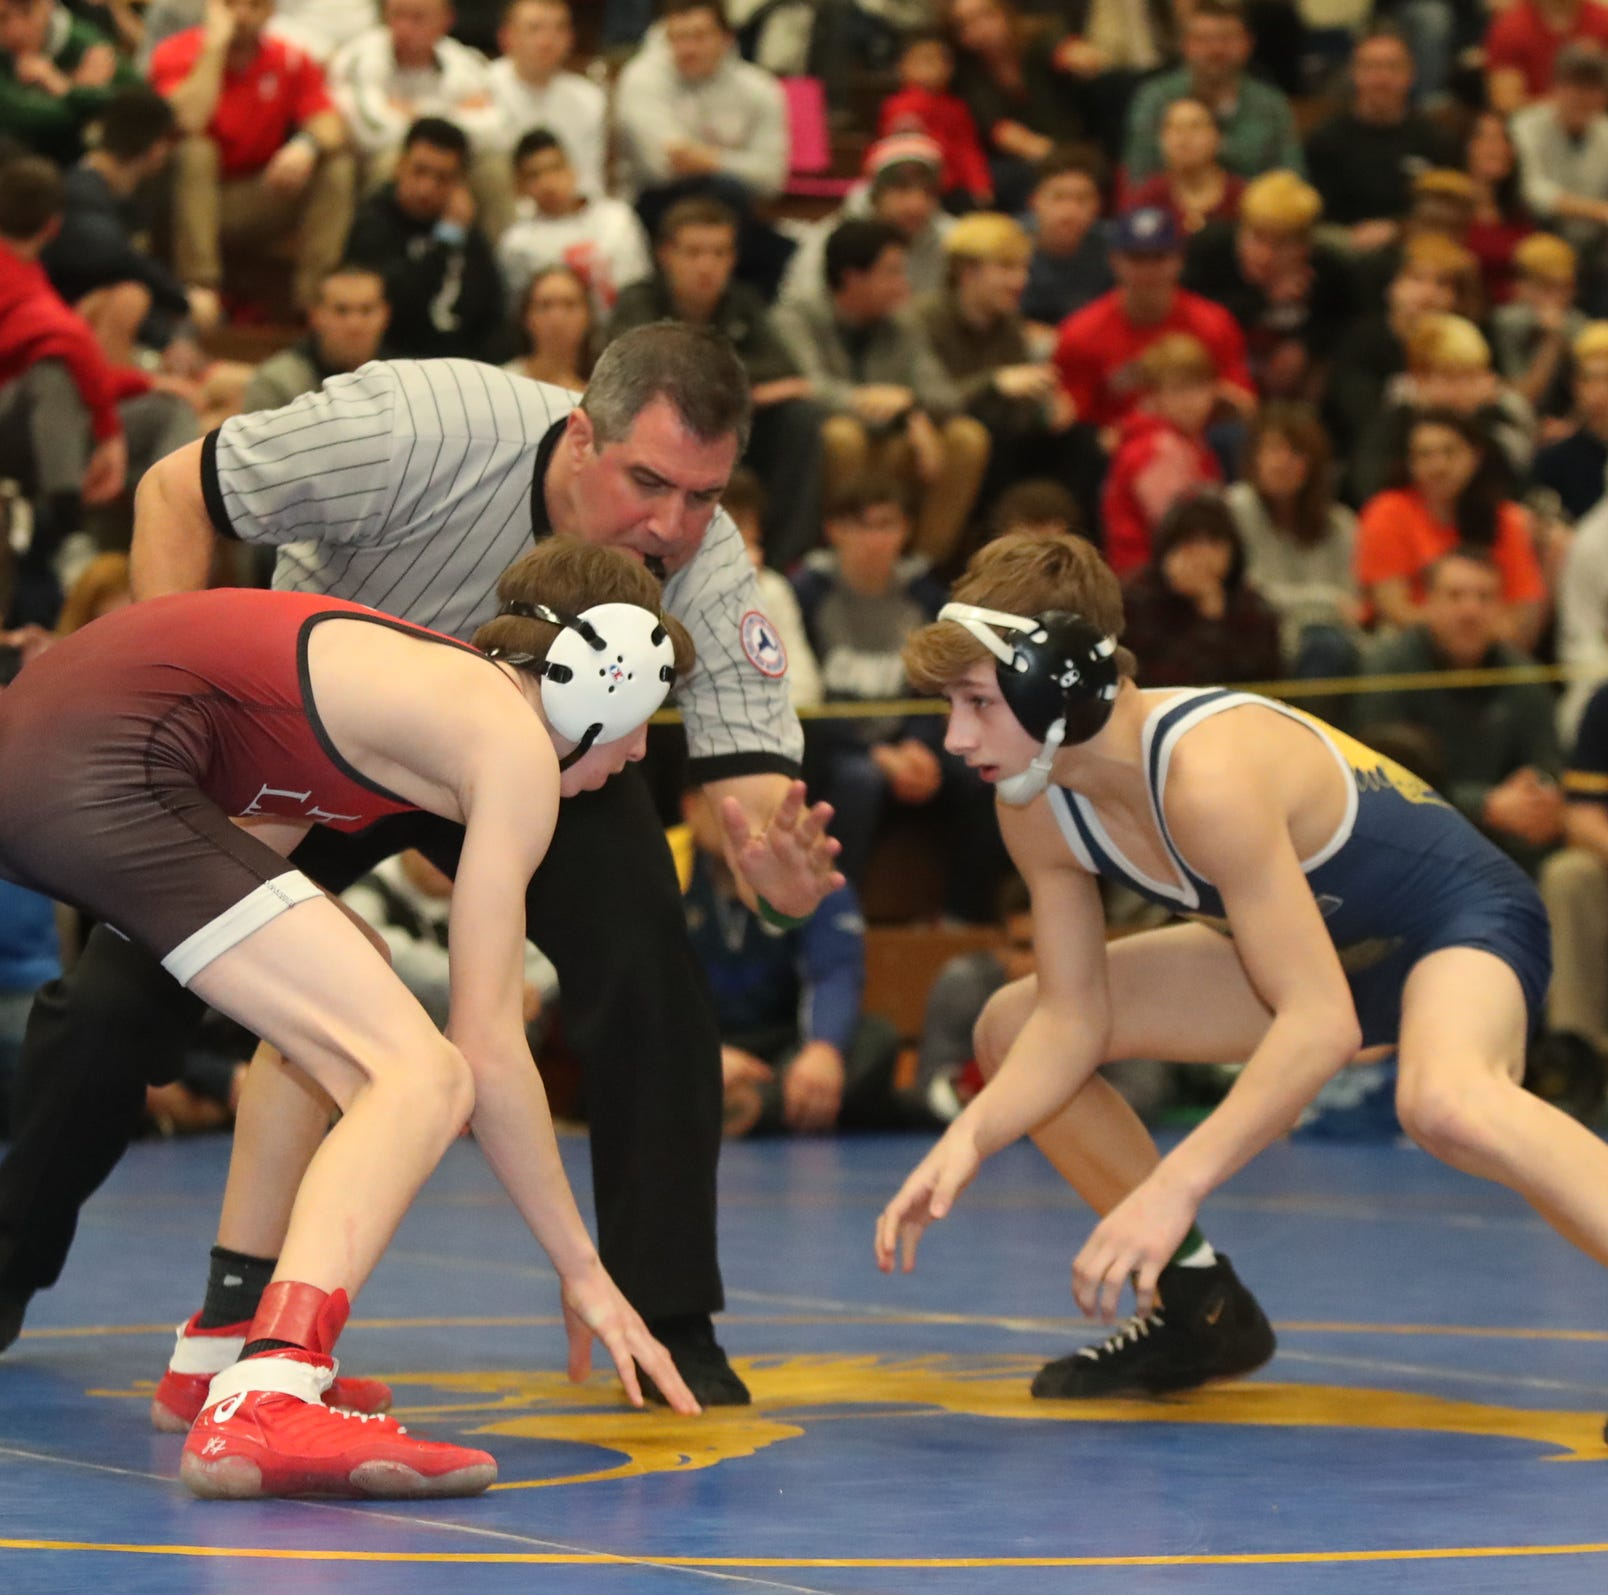 Wrestling: New York State may eliminate varsity weight class at 99 pounds next season